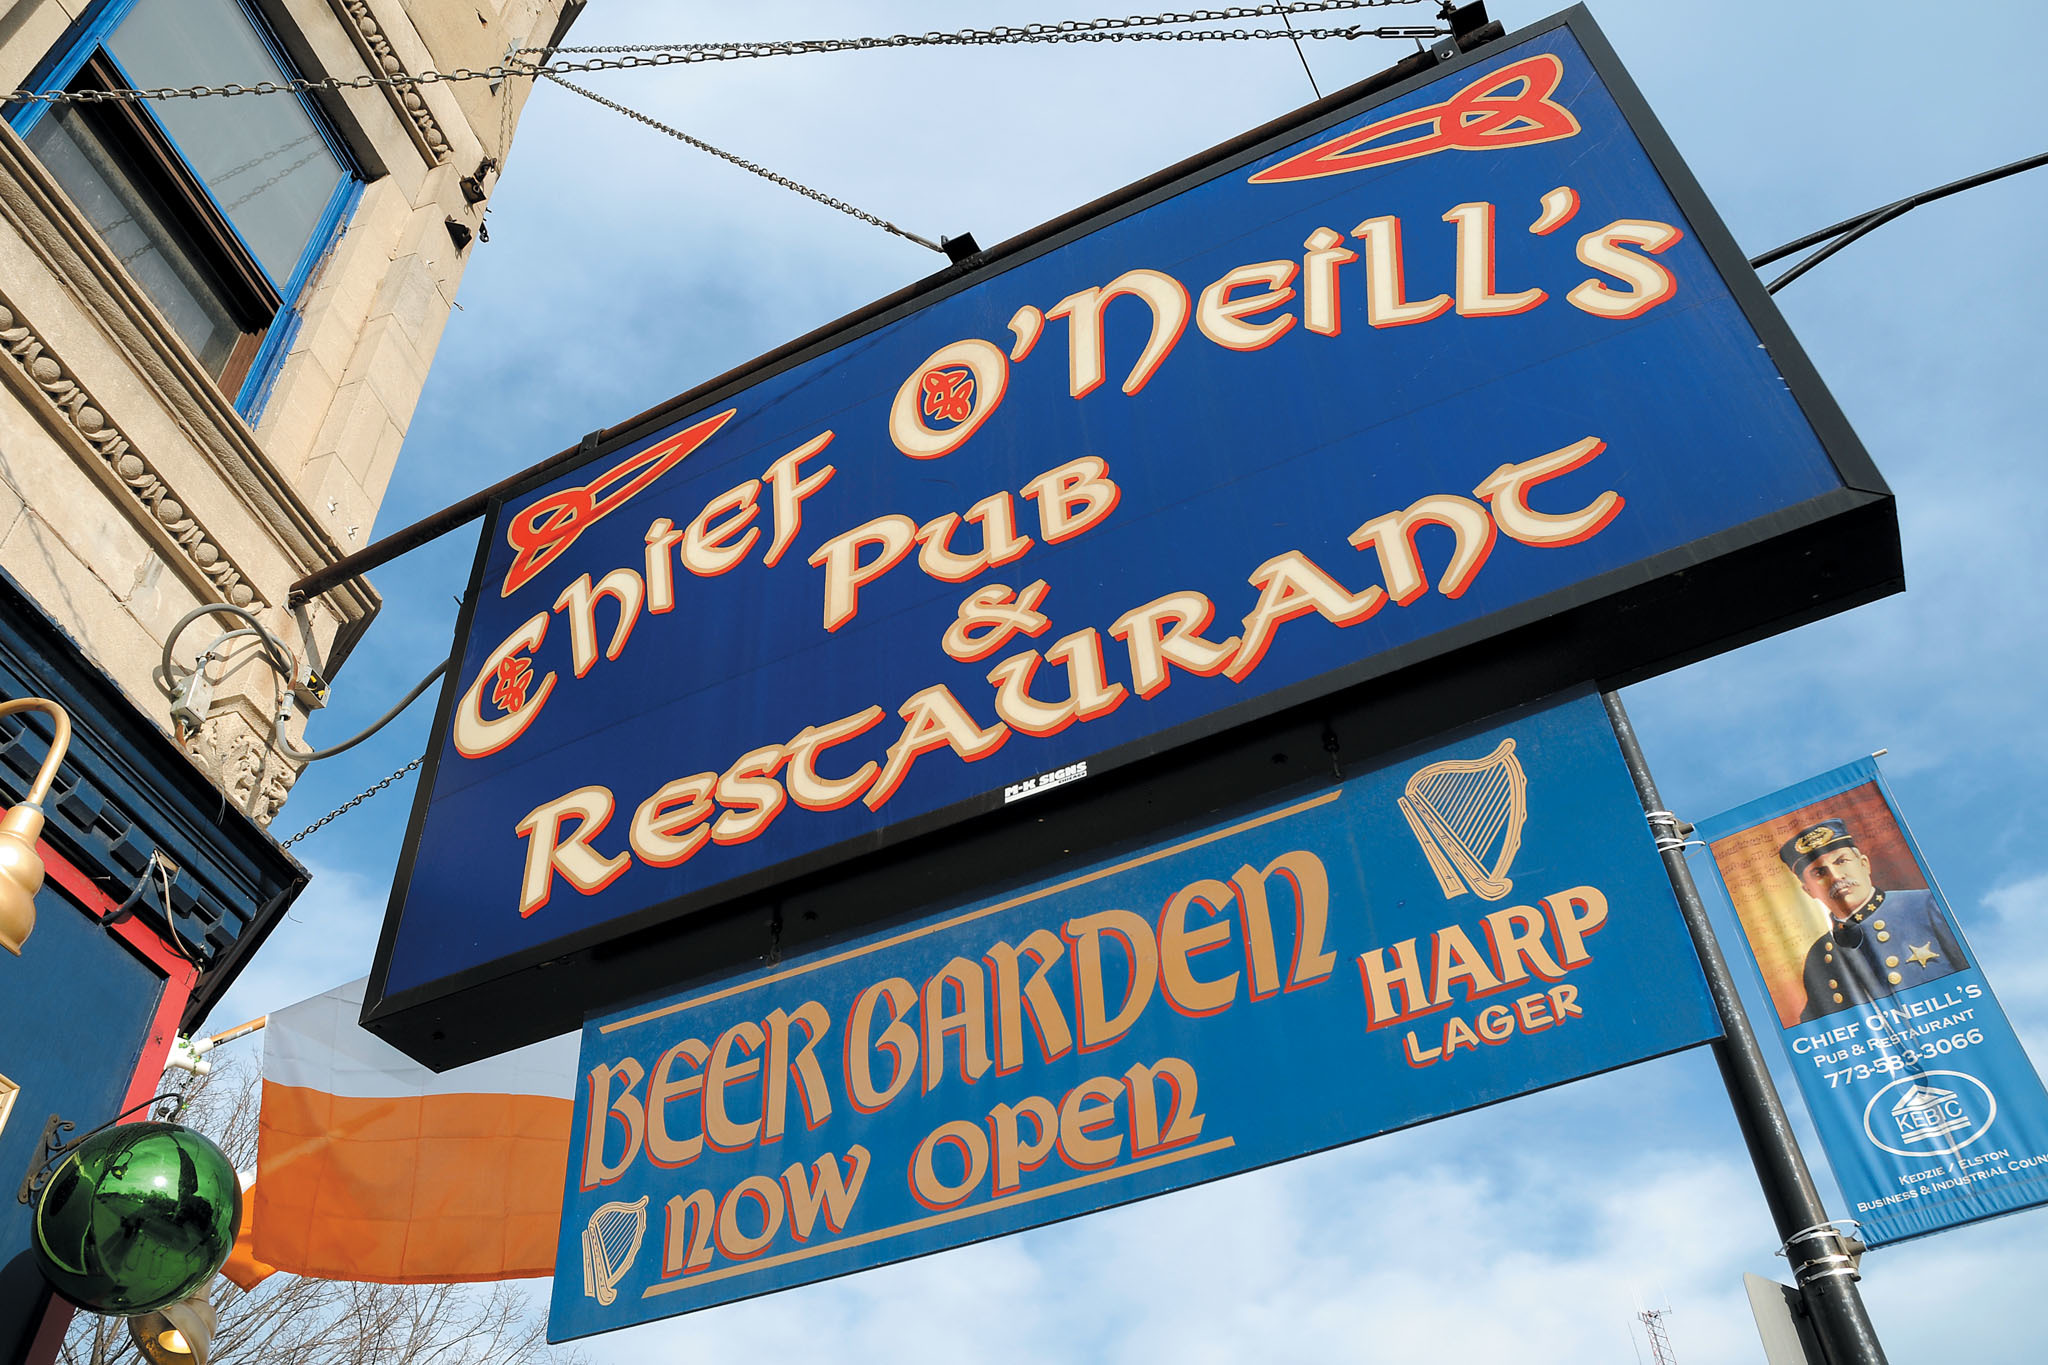 Chief O'Neill's Pub and Restaurant